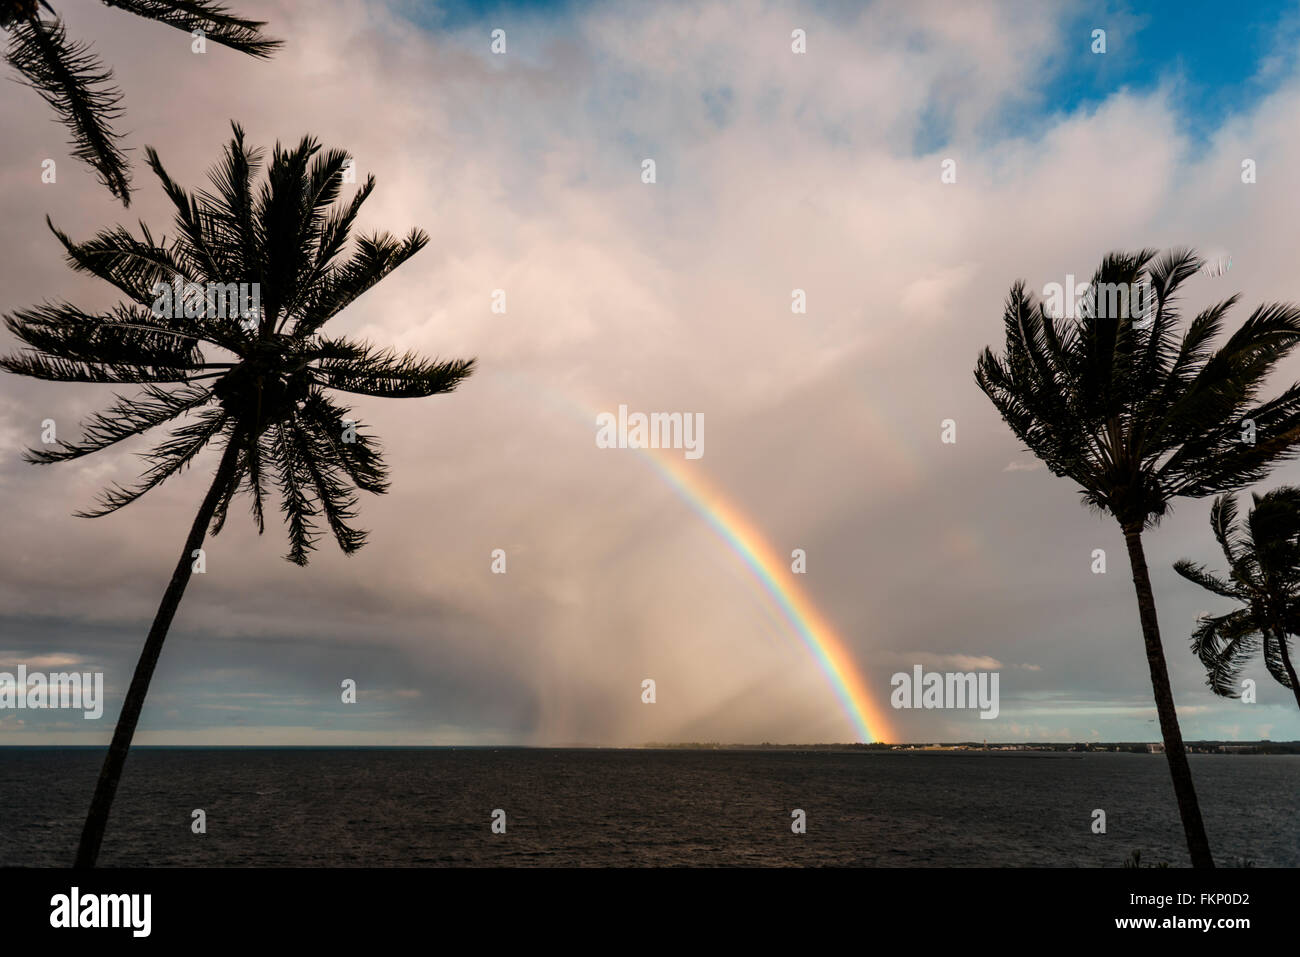 Tropical storm and bright rainbow with palm trees over the ocean in Hilo, Hawaii, USA - Stock Image